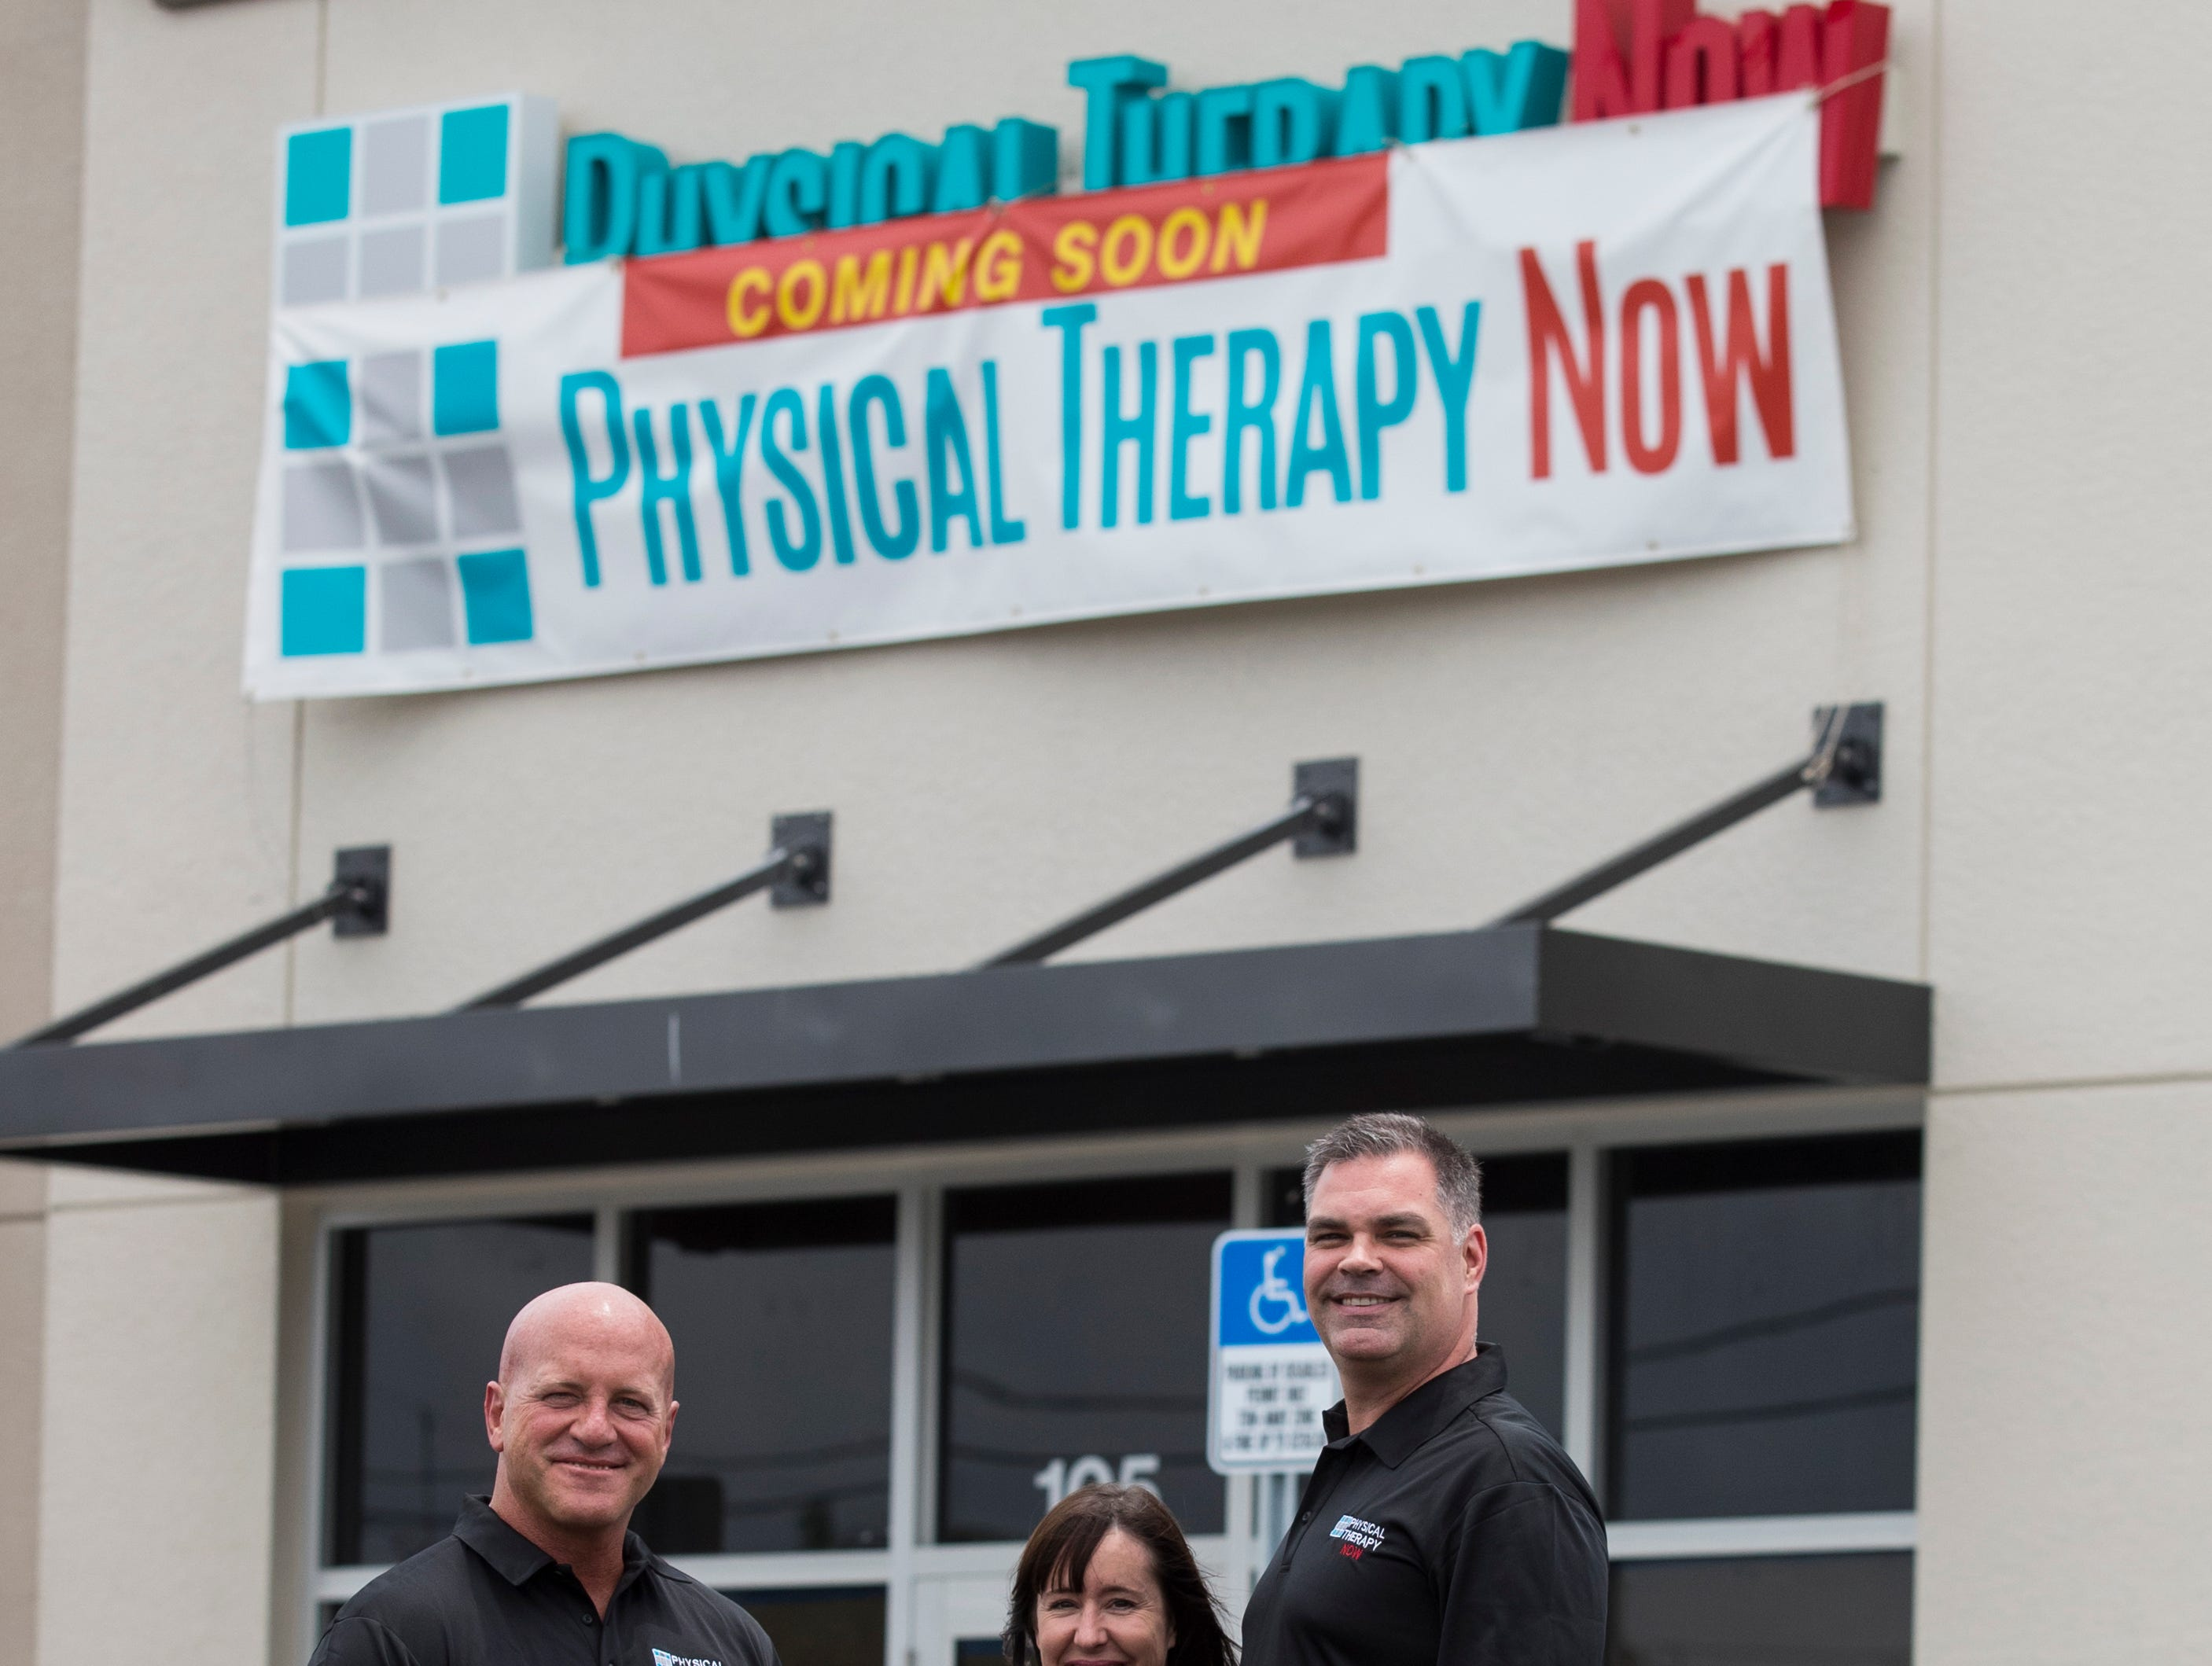 From left, Tom Hafer, Kim Johner and Jeff Johner, pictured here on Monday, May 6, 2019, will partner in developing a new Physical Therapy Now franchise in Cape Coral currently under construction at a new mini mall on the southwest corner of Nicholas Parkway and Pine Island Road. The business is slated to open next month.